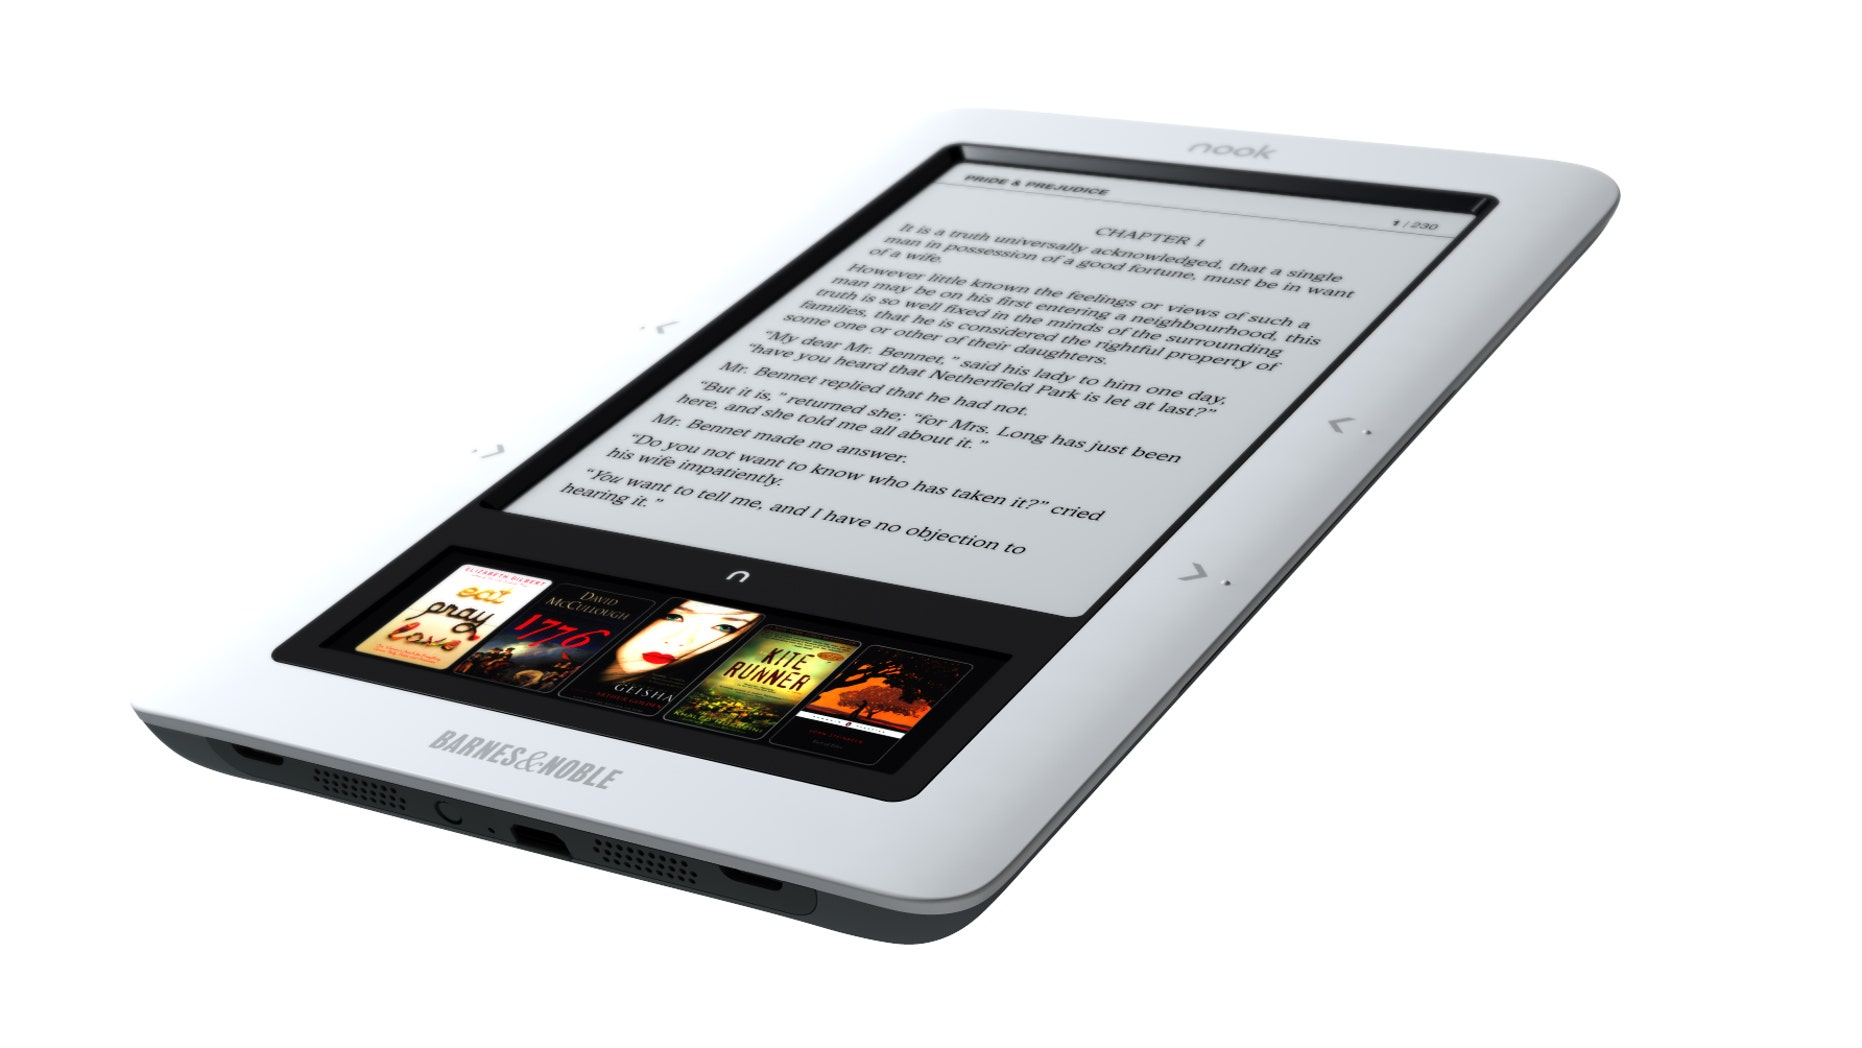 To compensate consumers for delays to its e-book reader, Barnes & Noble is promising $100 gift certificates.